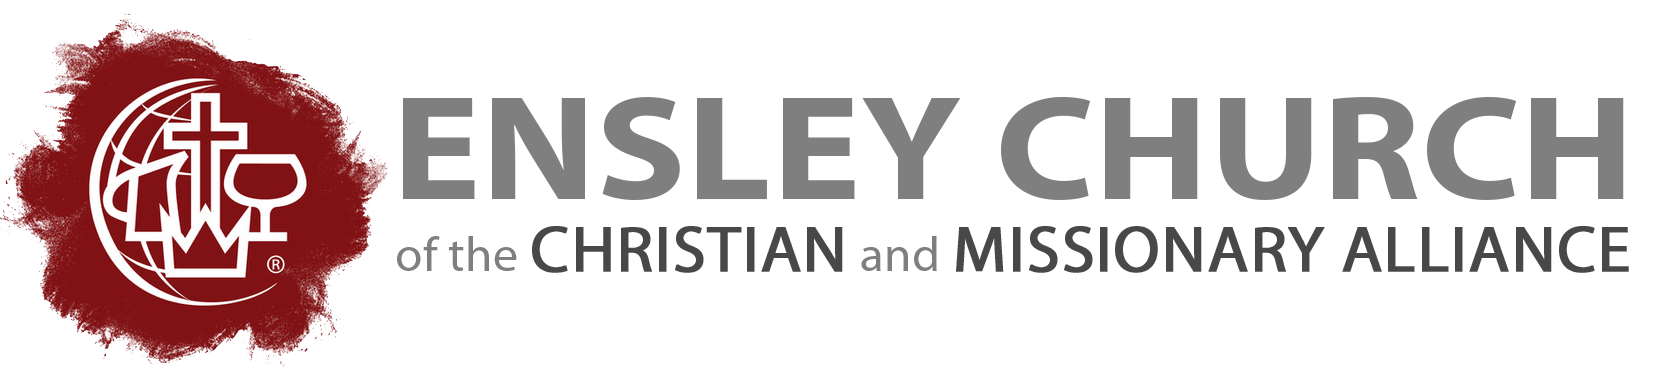 ensley church alliance logo